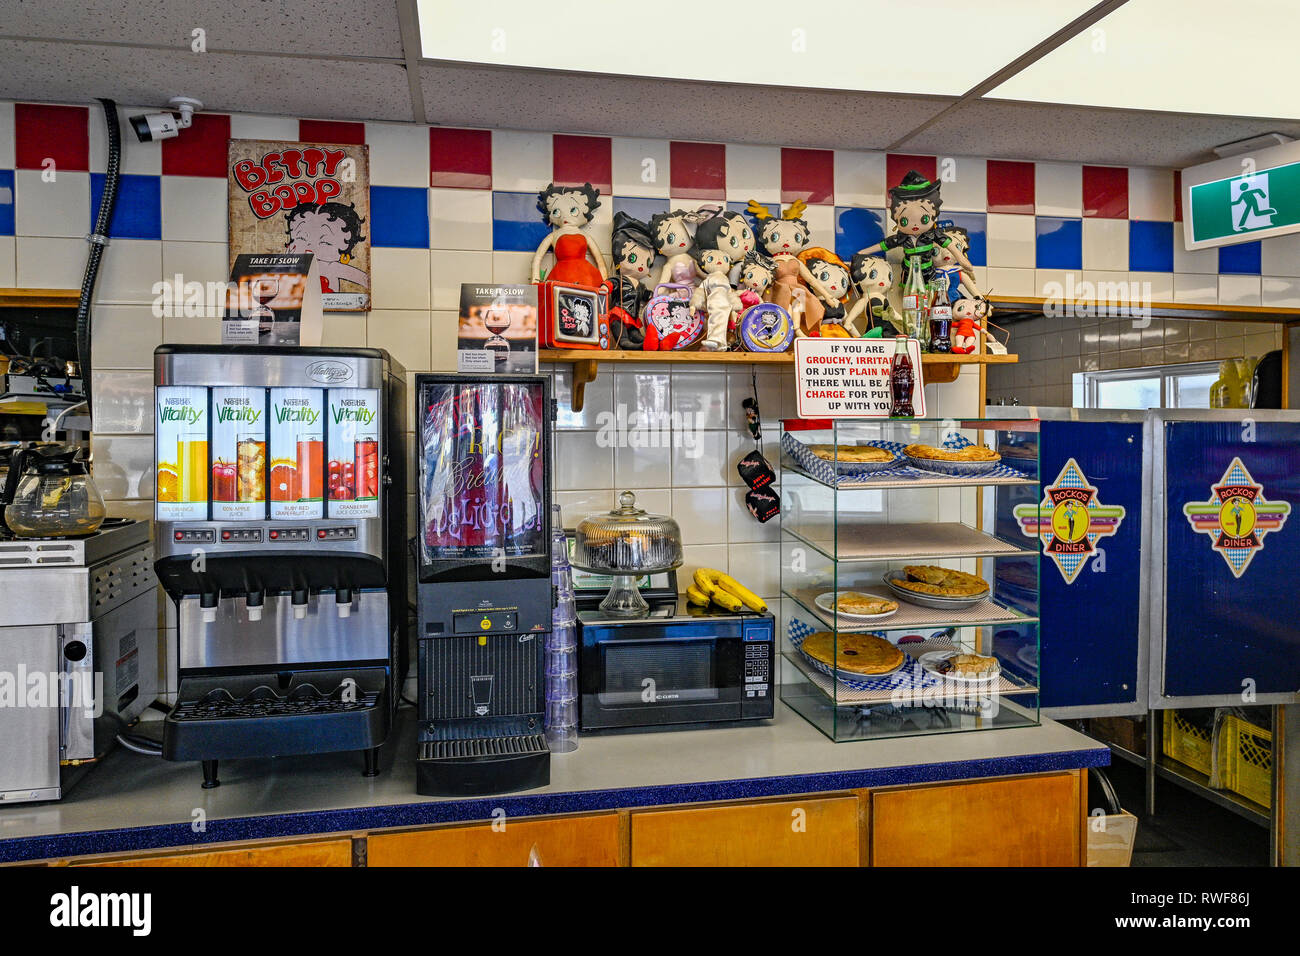 Rocko S Diner Mission British Columbia Canada Where Filming For Pop S Diner In The Tv Series Riverdale Took Place Stock Photo Alamy